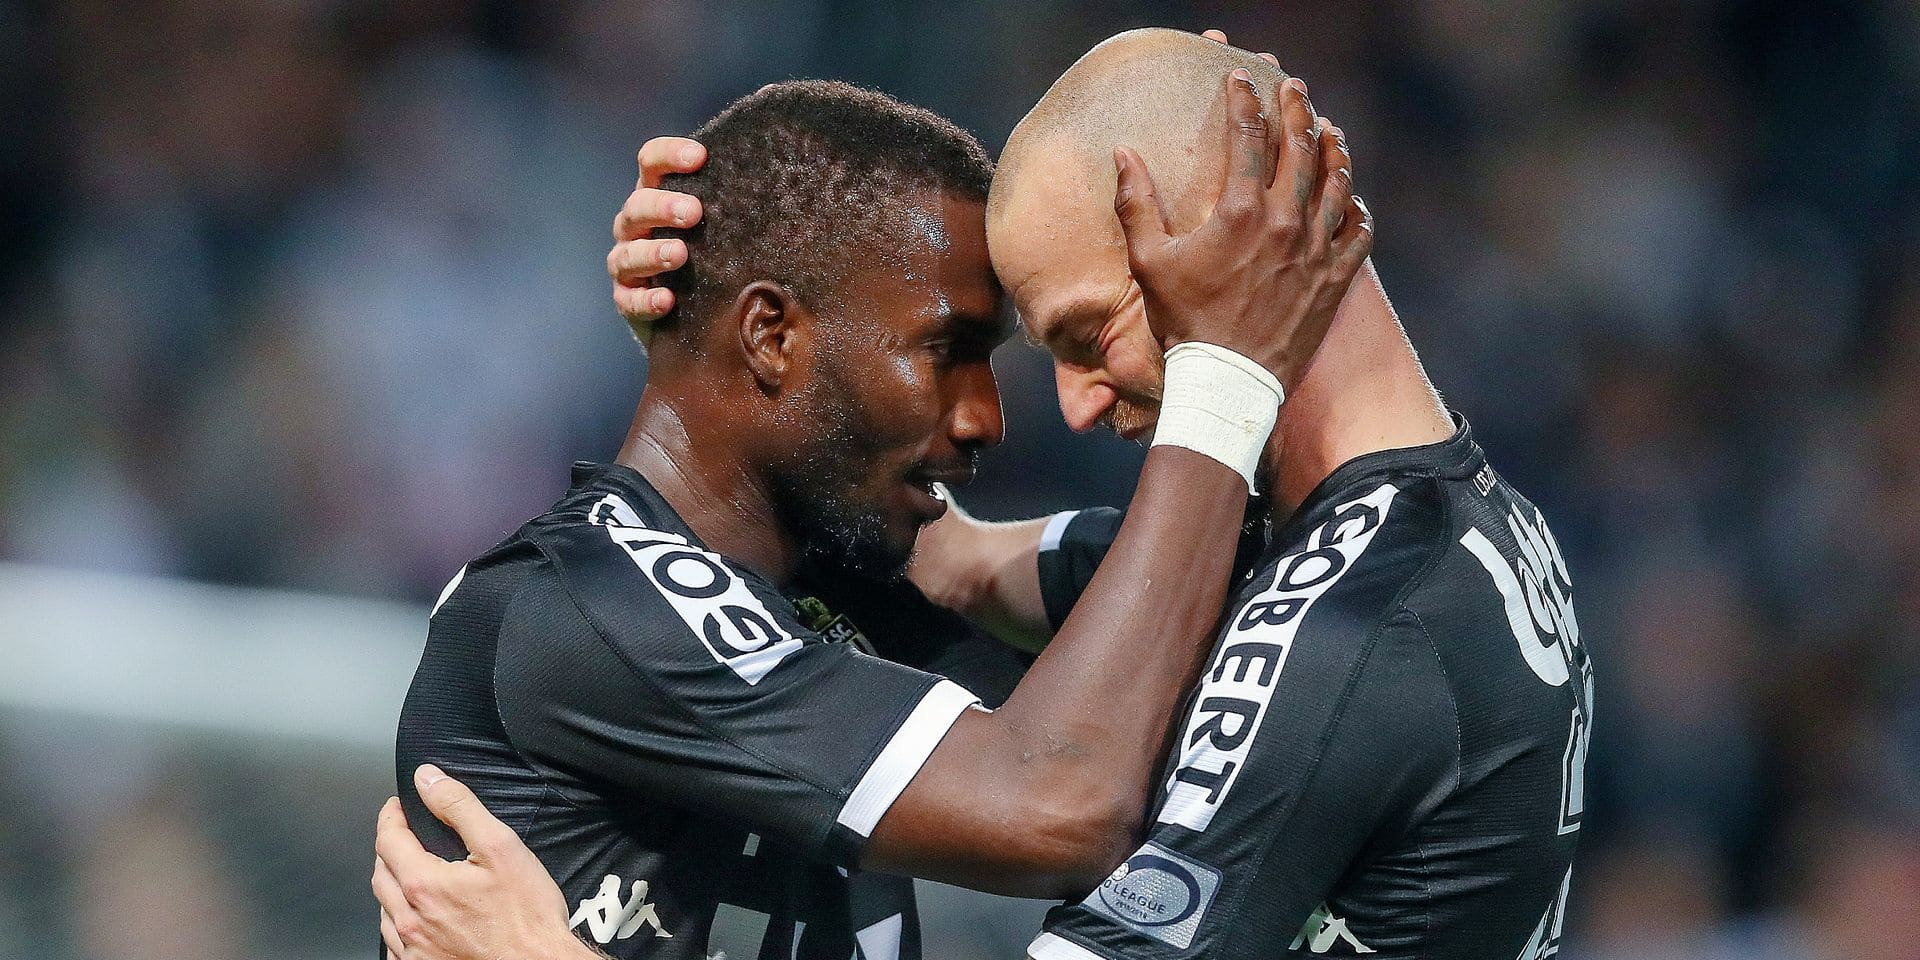 Charleroi's Adama Niane and Charleroi's Dorian Dessoleil celebrate during the Jupiler Pro League match between Sporting Charleroi and Sporting Lokeren, Saturday 29 September 2018 in Charleroi, on the ninth day of the 'Jupiler Pro League' Belgian soccer championship season 2018-2019. BELGA PHOTO BRUNO FAHY